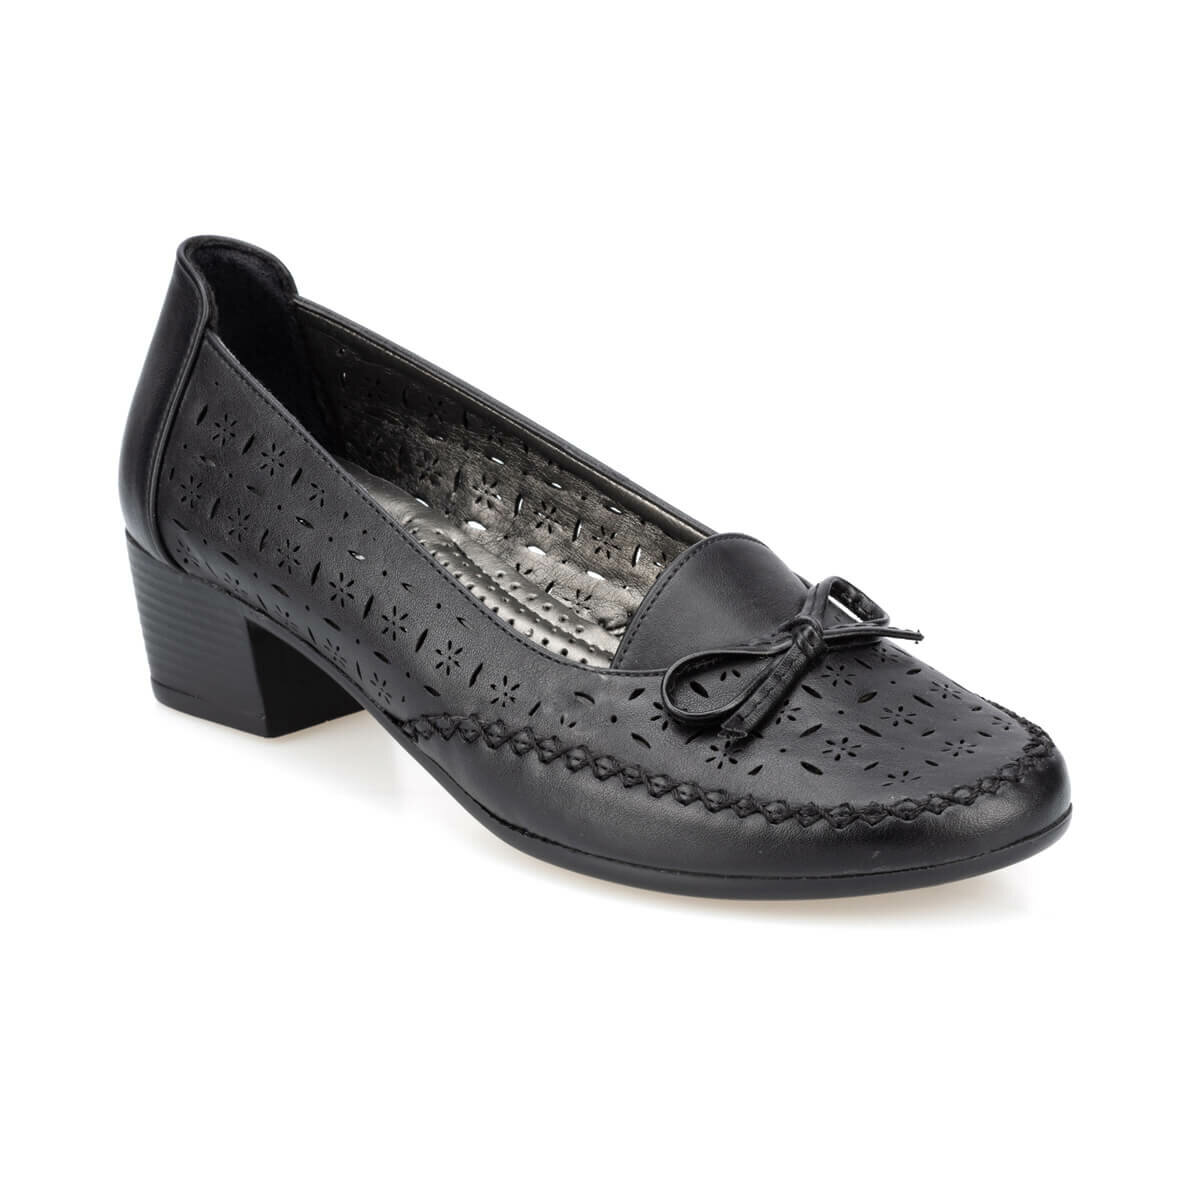 FLO 91. 150692.Z Black Women Shoes Polaris